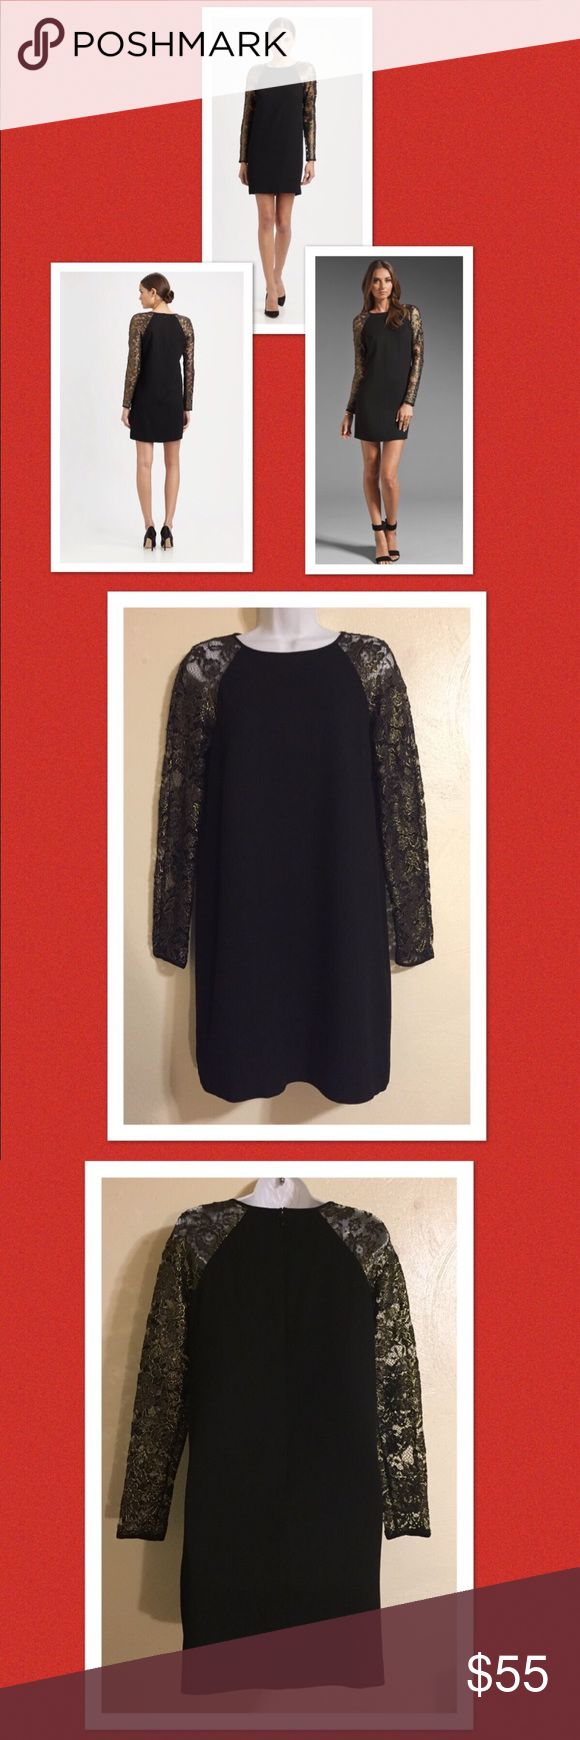 """Tibi Foil Lace Black Cocktail Dress Sz 4 This is a gorgeous dress. The black portion of the dress is lined. I must let you know that there are some light deodorant marks under each armpit but it does not look bad at all & you can't see them with the dress on. I unfortunately get deodorant under the arms of all my black dresses . I tried to clean the area best I could. There are no odors. Please see photos for fabric content & care. Approximate measurements laying flat: Armpit to armpit 18""""…"""